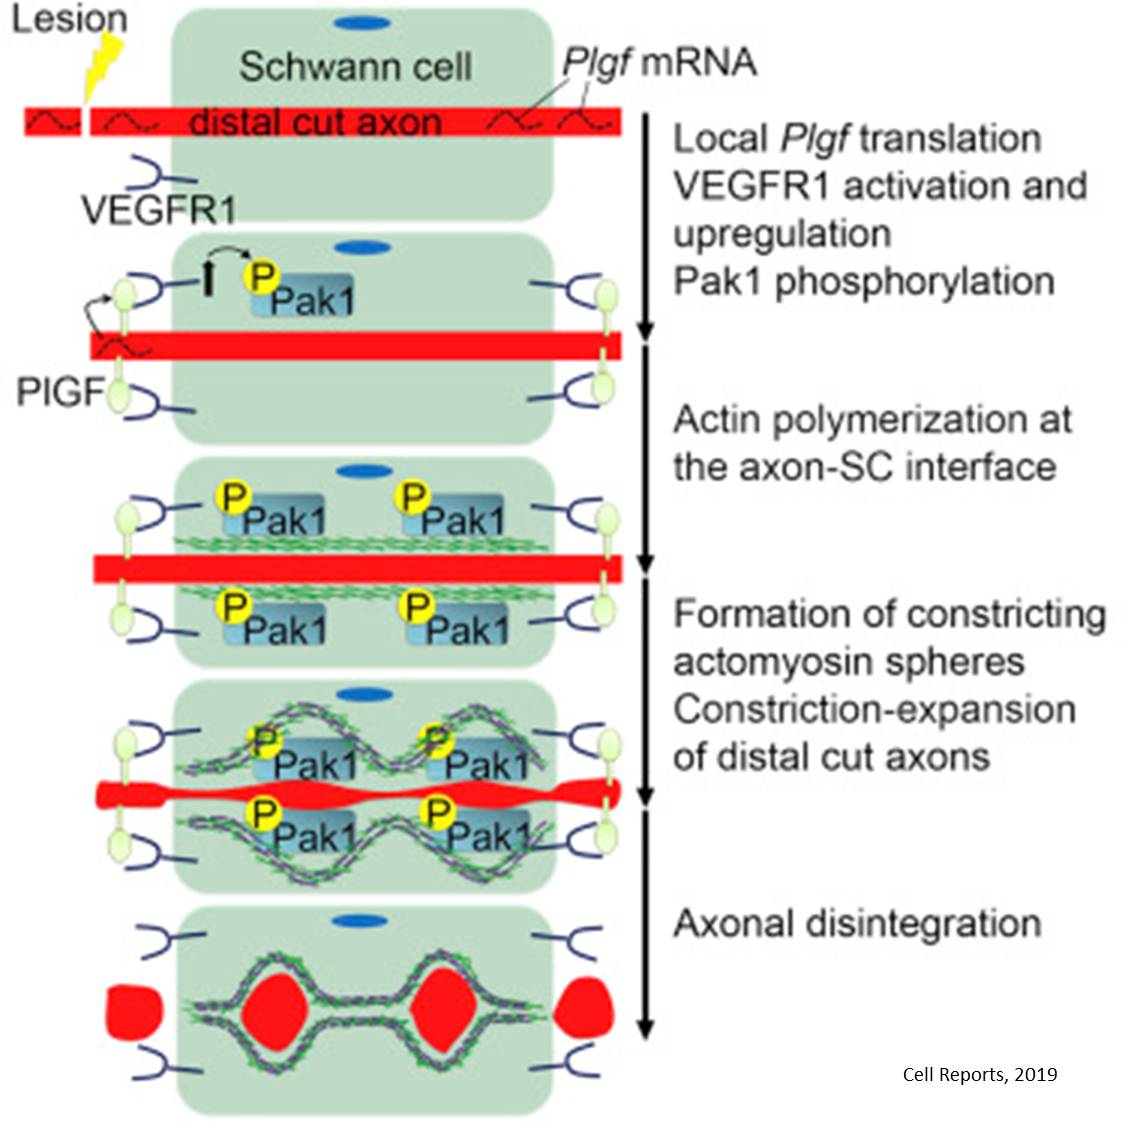 Mechanism to remove the injured axons to facilitate nerve regeneration in peripheral nervous system